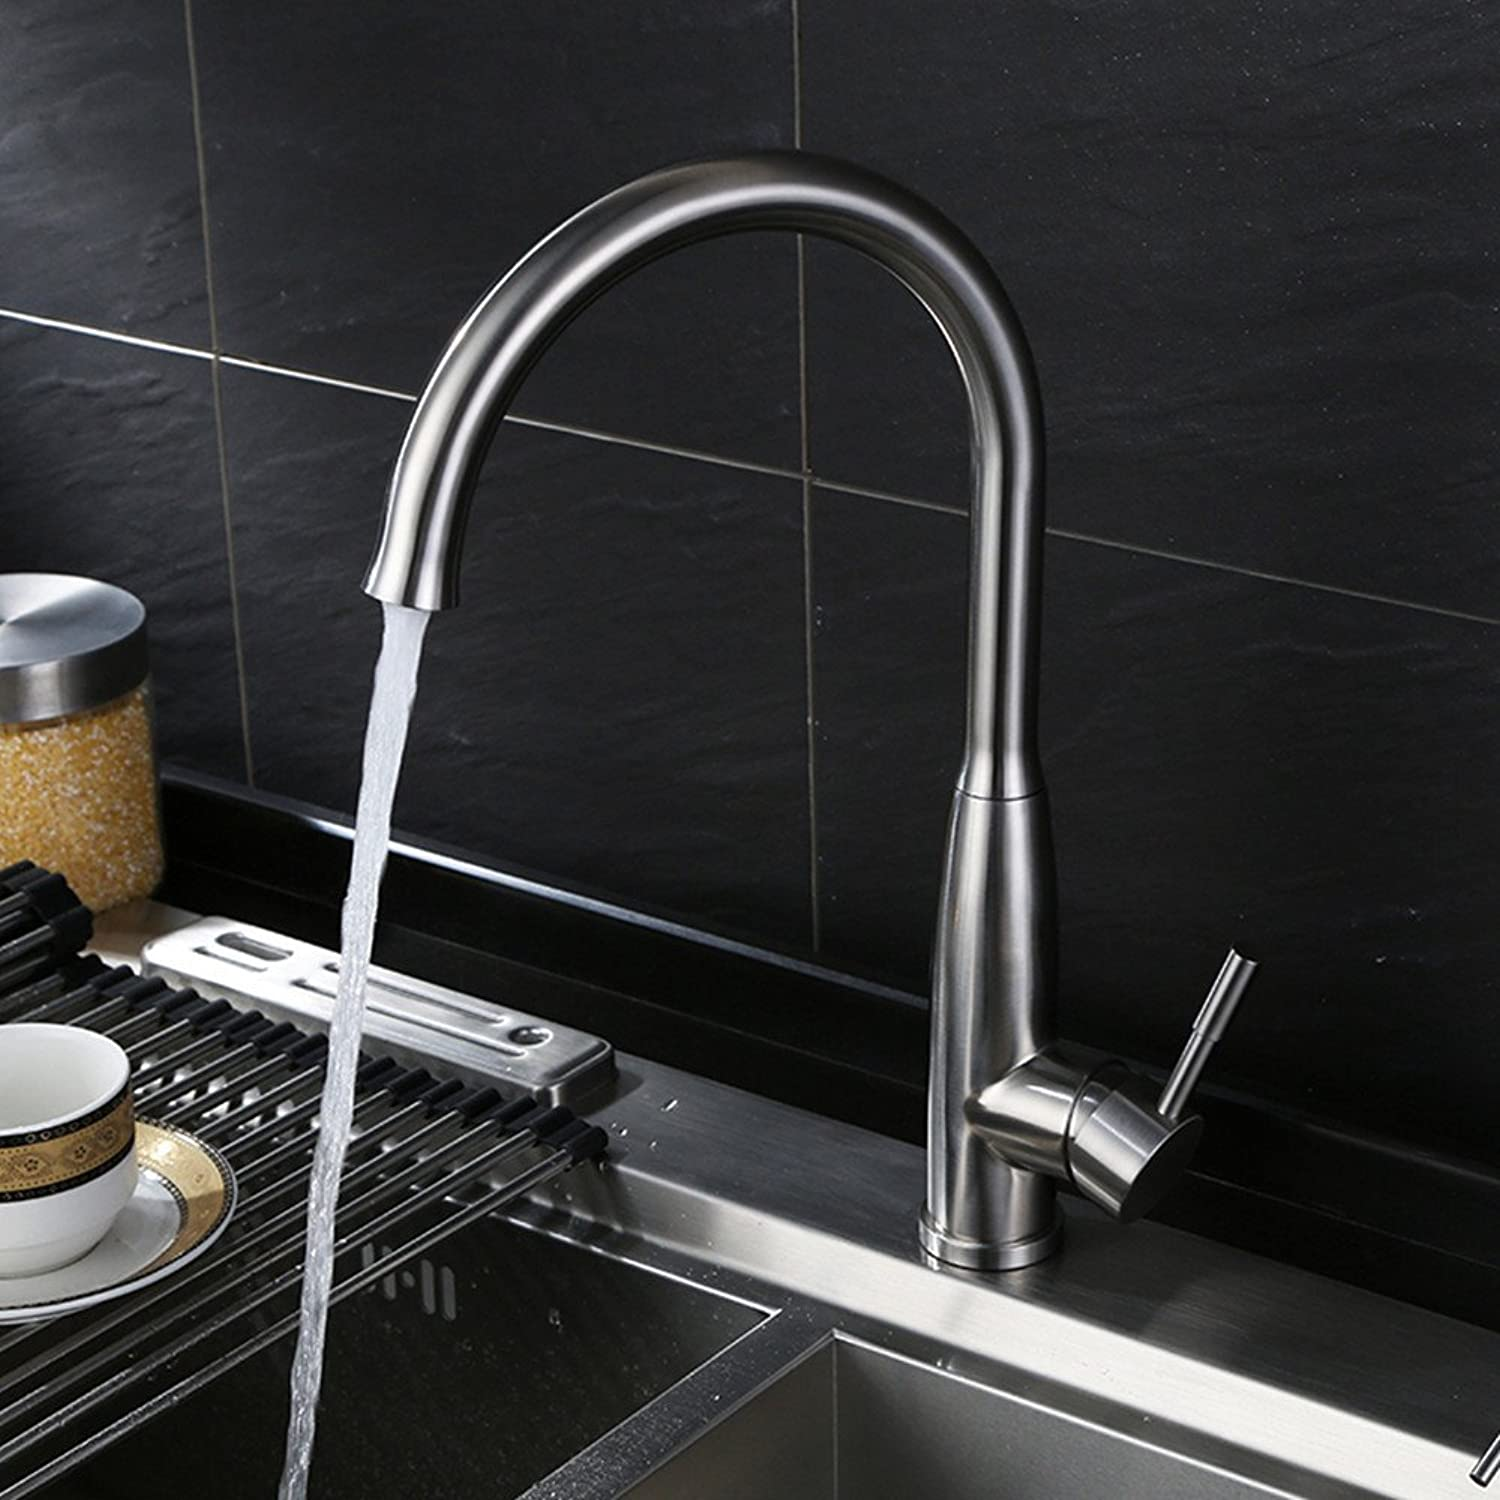 Hlluya Professional Sink Mixer Tap Kitchen Faucet The sink washing dishes pots of single cold tap Turn hot and cold faucet stainless steel kitchen faucet, cold and hot rocket